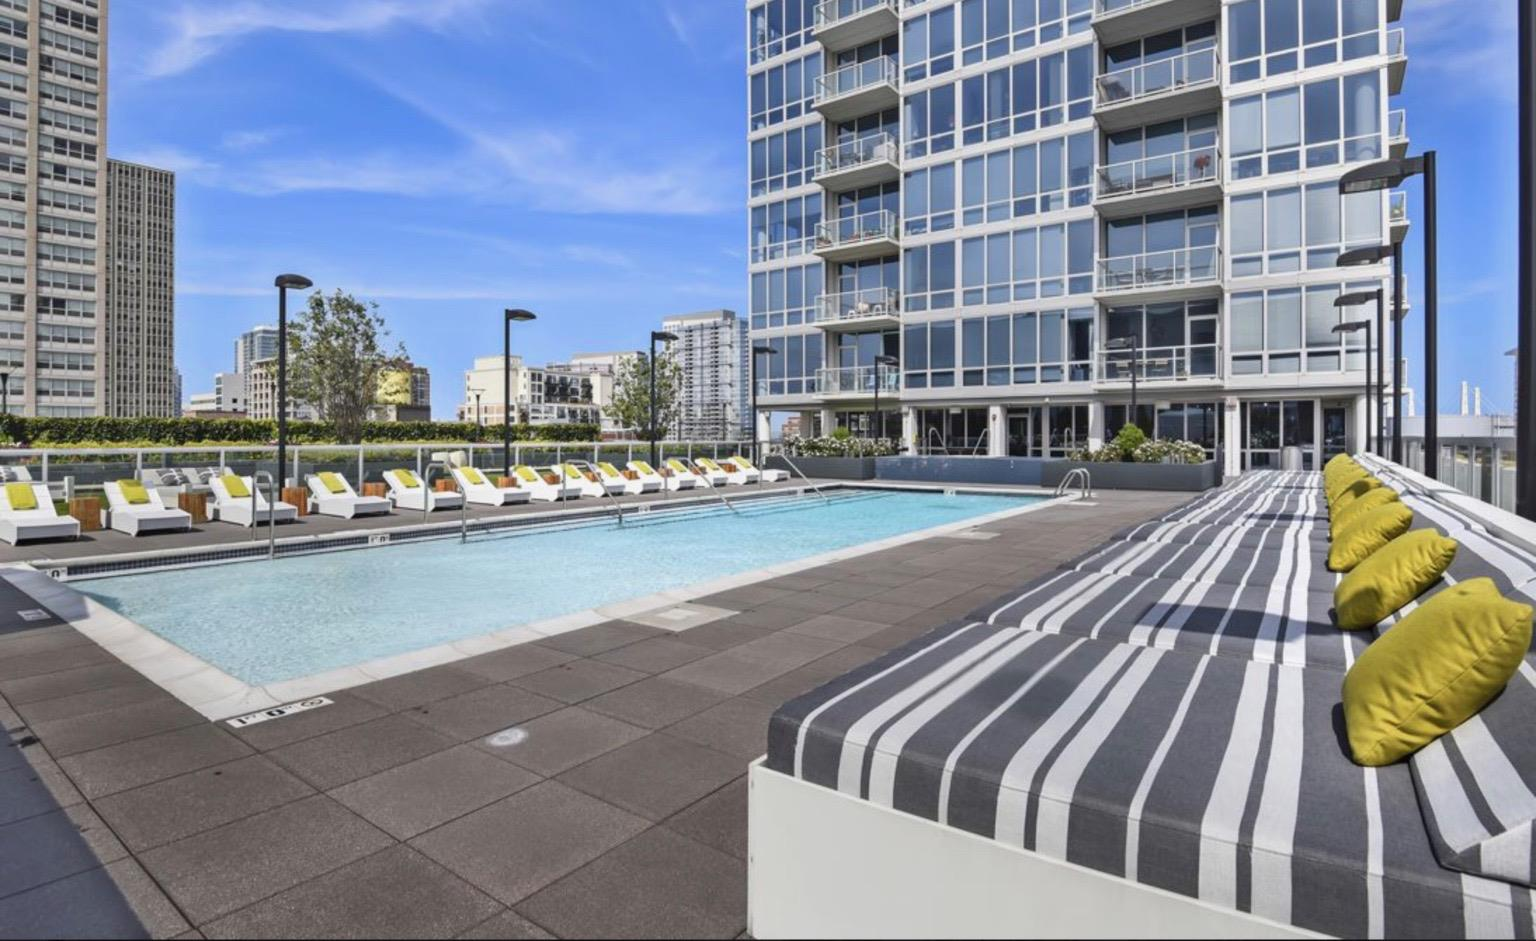 2138 SOUTH INDIANA AVE 608T Chicago IL 60616 id-1754237 homes for sale